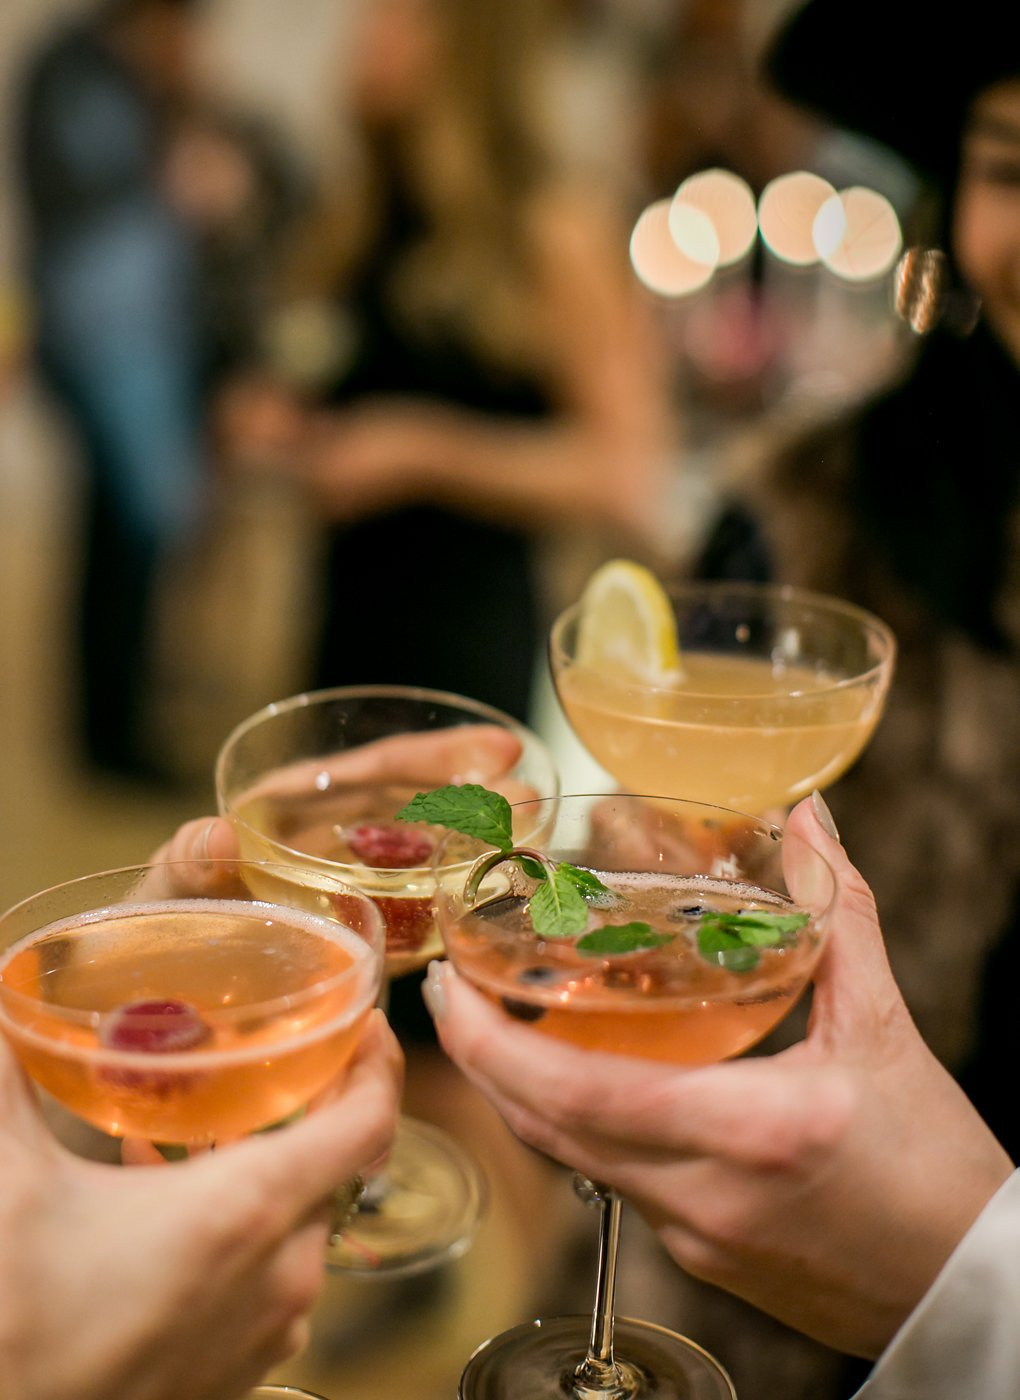 Guests toasting with champagne coupe glass